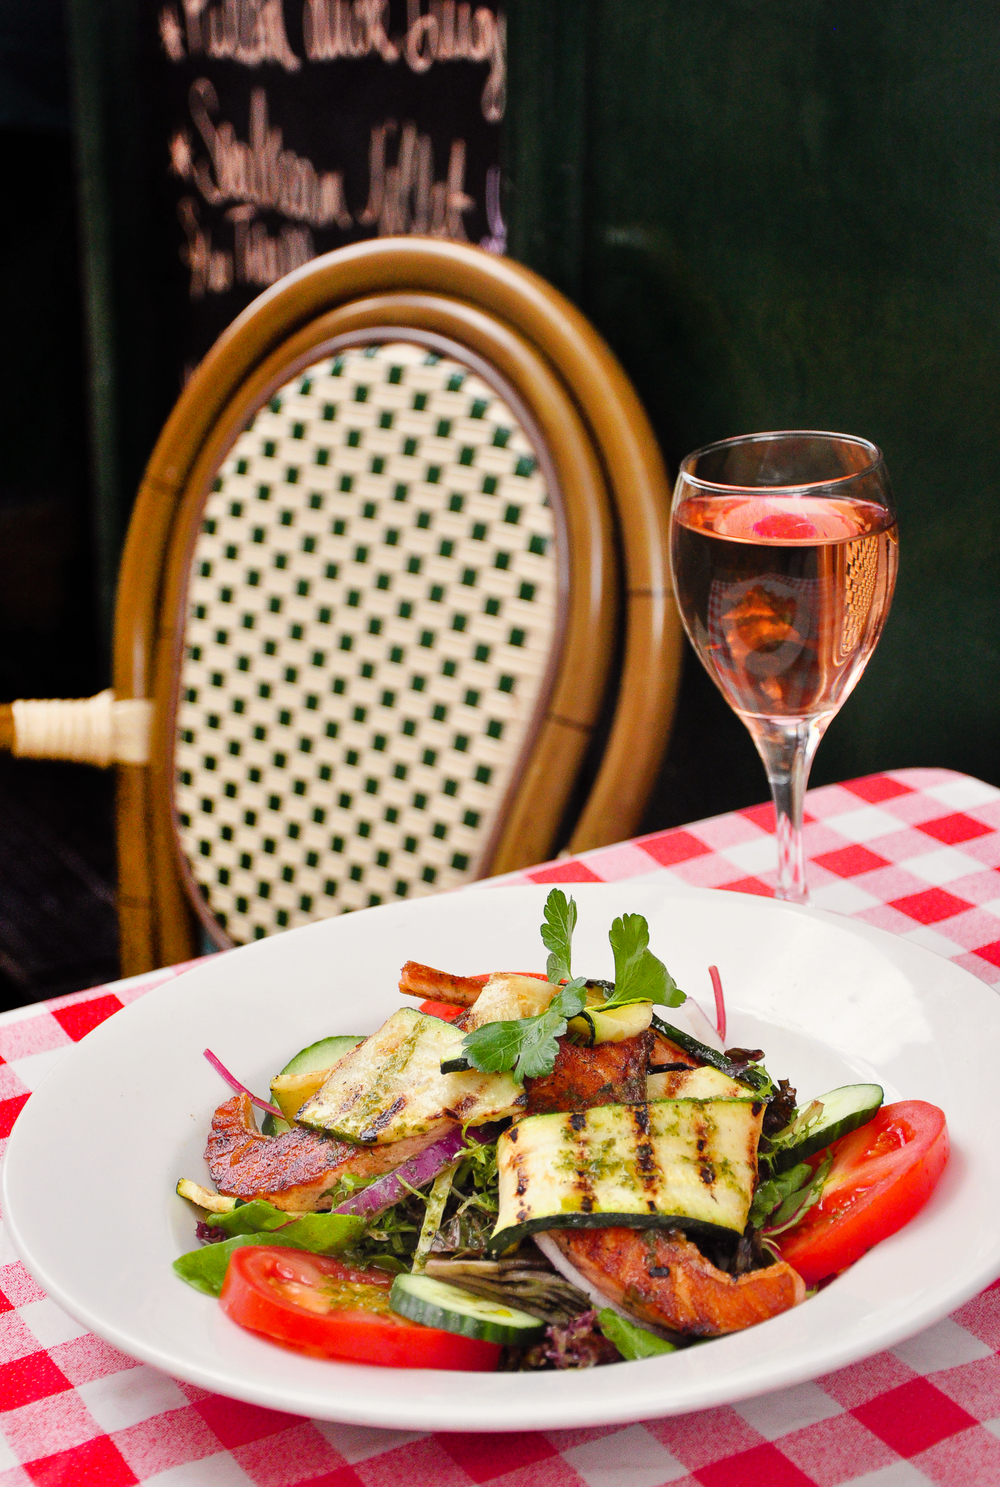 Special : Salmon and Zucchini Salad served with a glass of Rosé outside